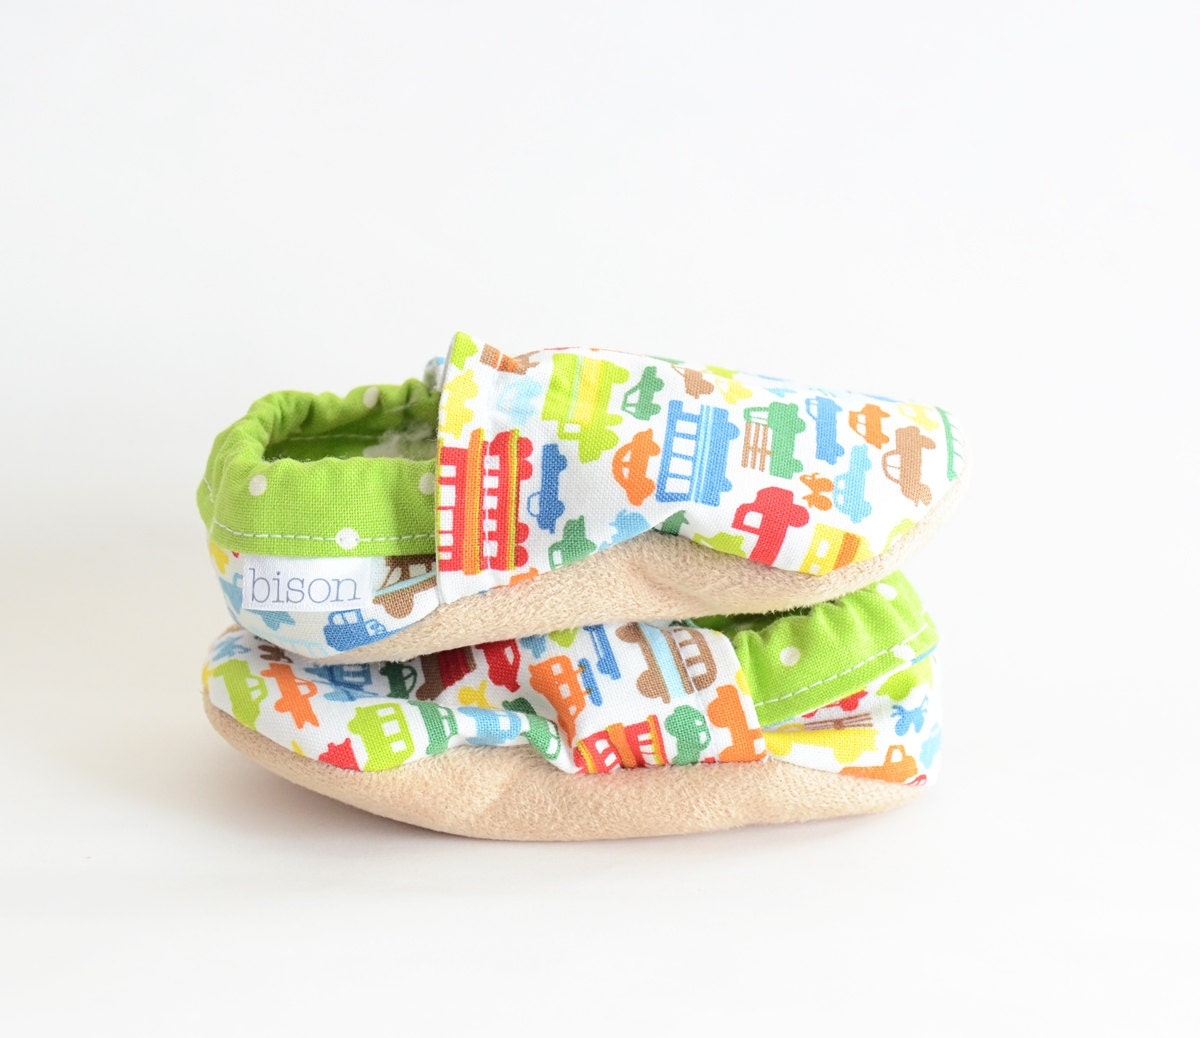 Beep Beep Bison Booties Newborn Size 6 to 12 Months Baby shoes